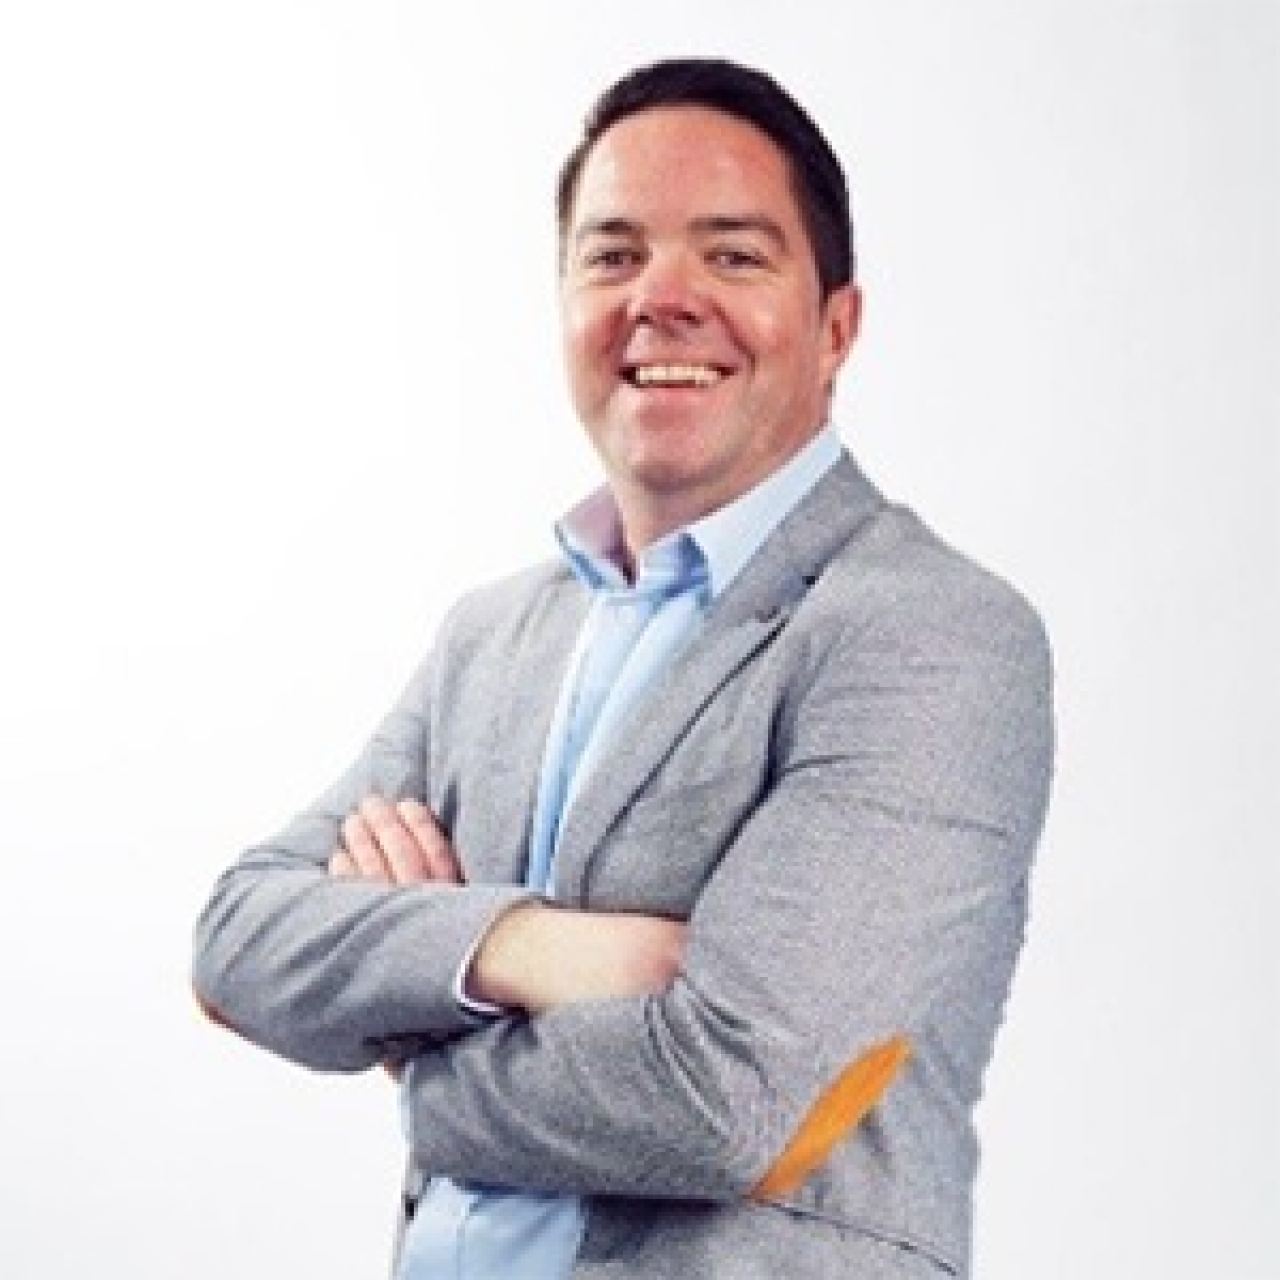 James McCarthy: Senior Account Manager, New Markets